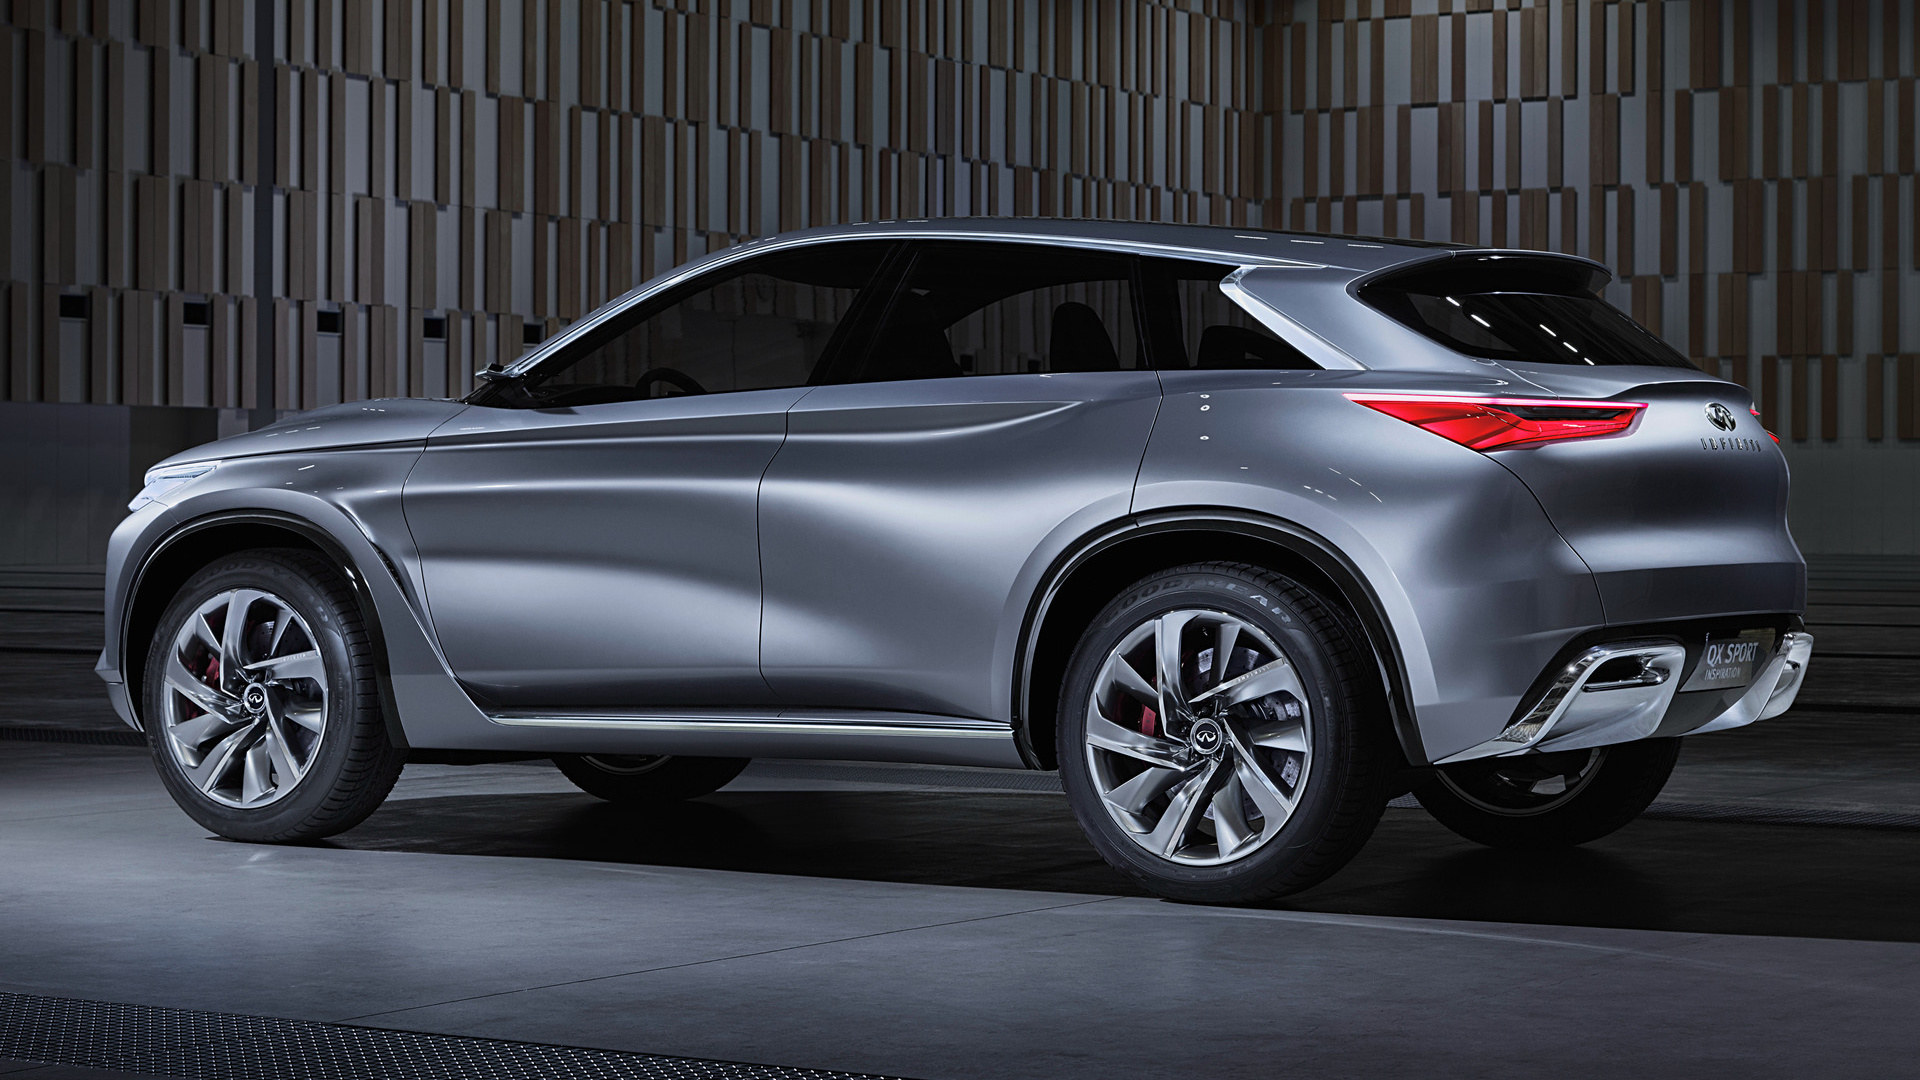 Infiniti QX Sport Inspiration Concept (2016) Wallpapers and HD Images - Car Pixel